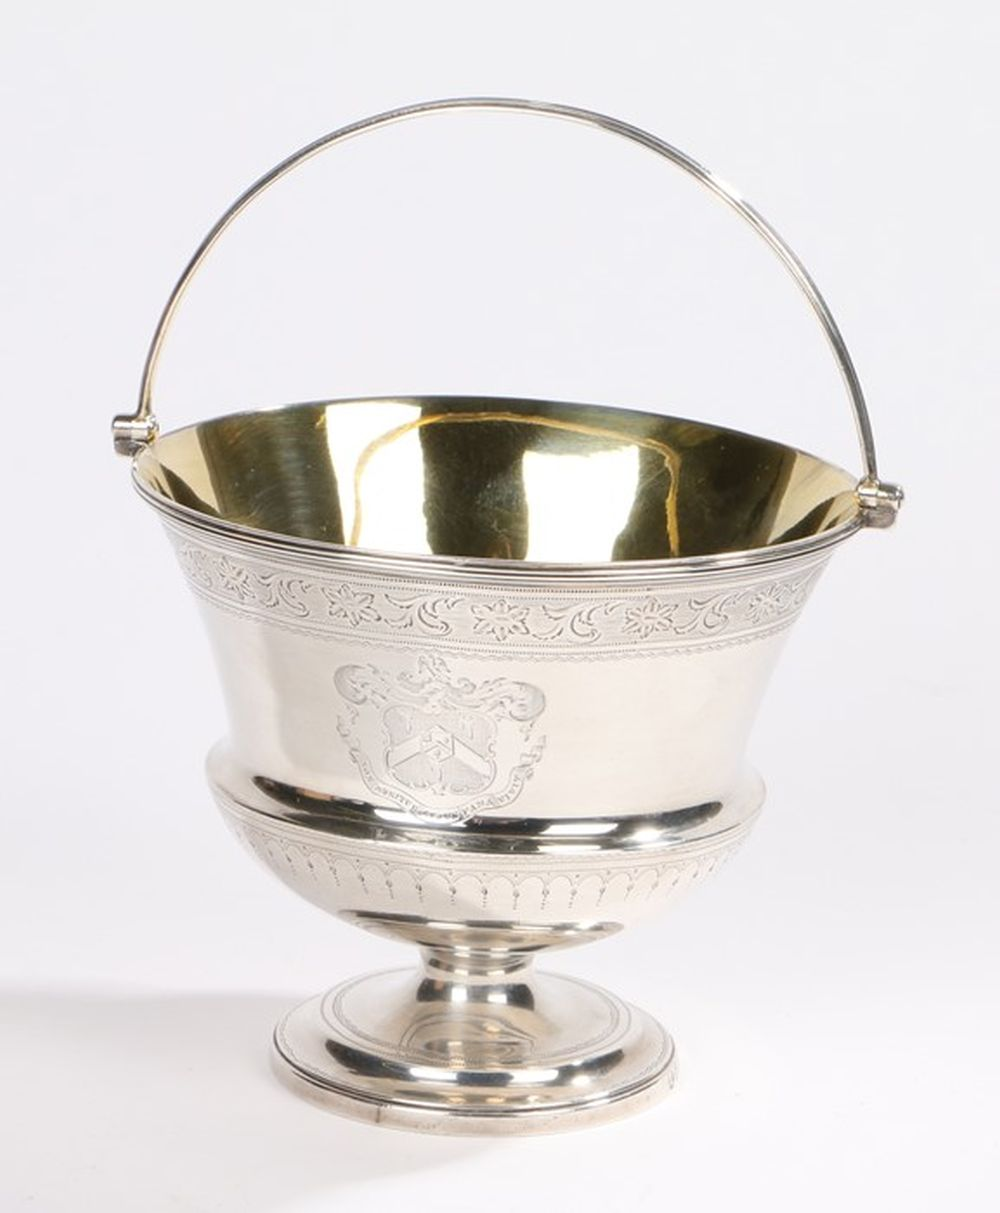 Georgian III silver bowl, London 1791, makers marks rubbed, with reeded swing handle, gilt interior,